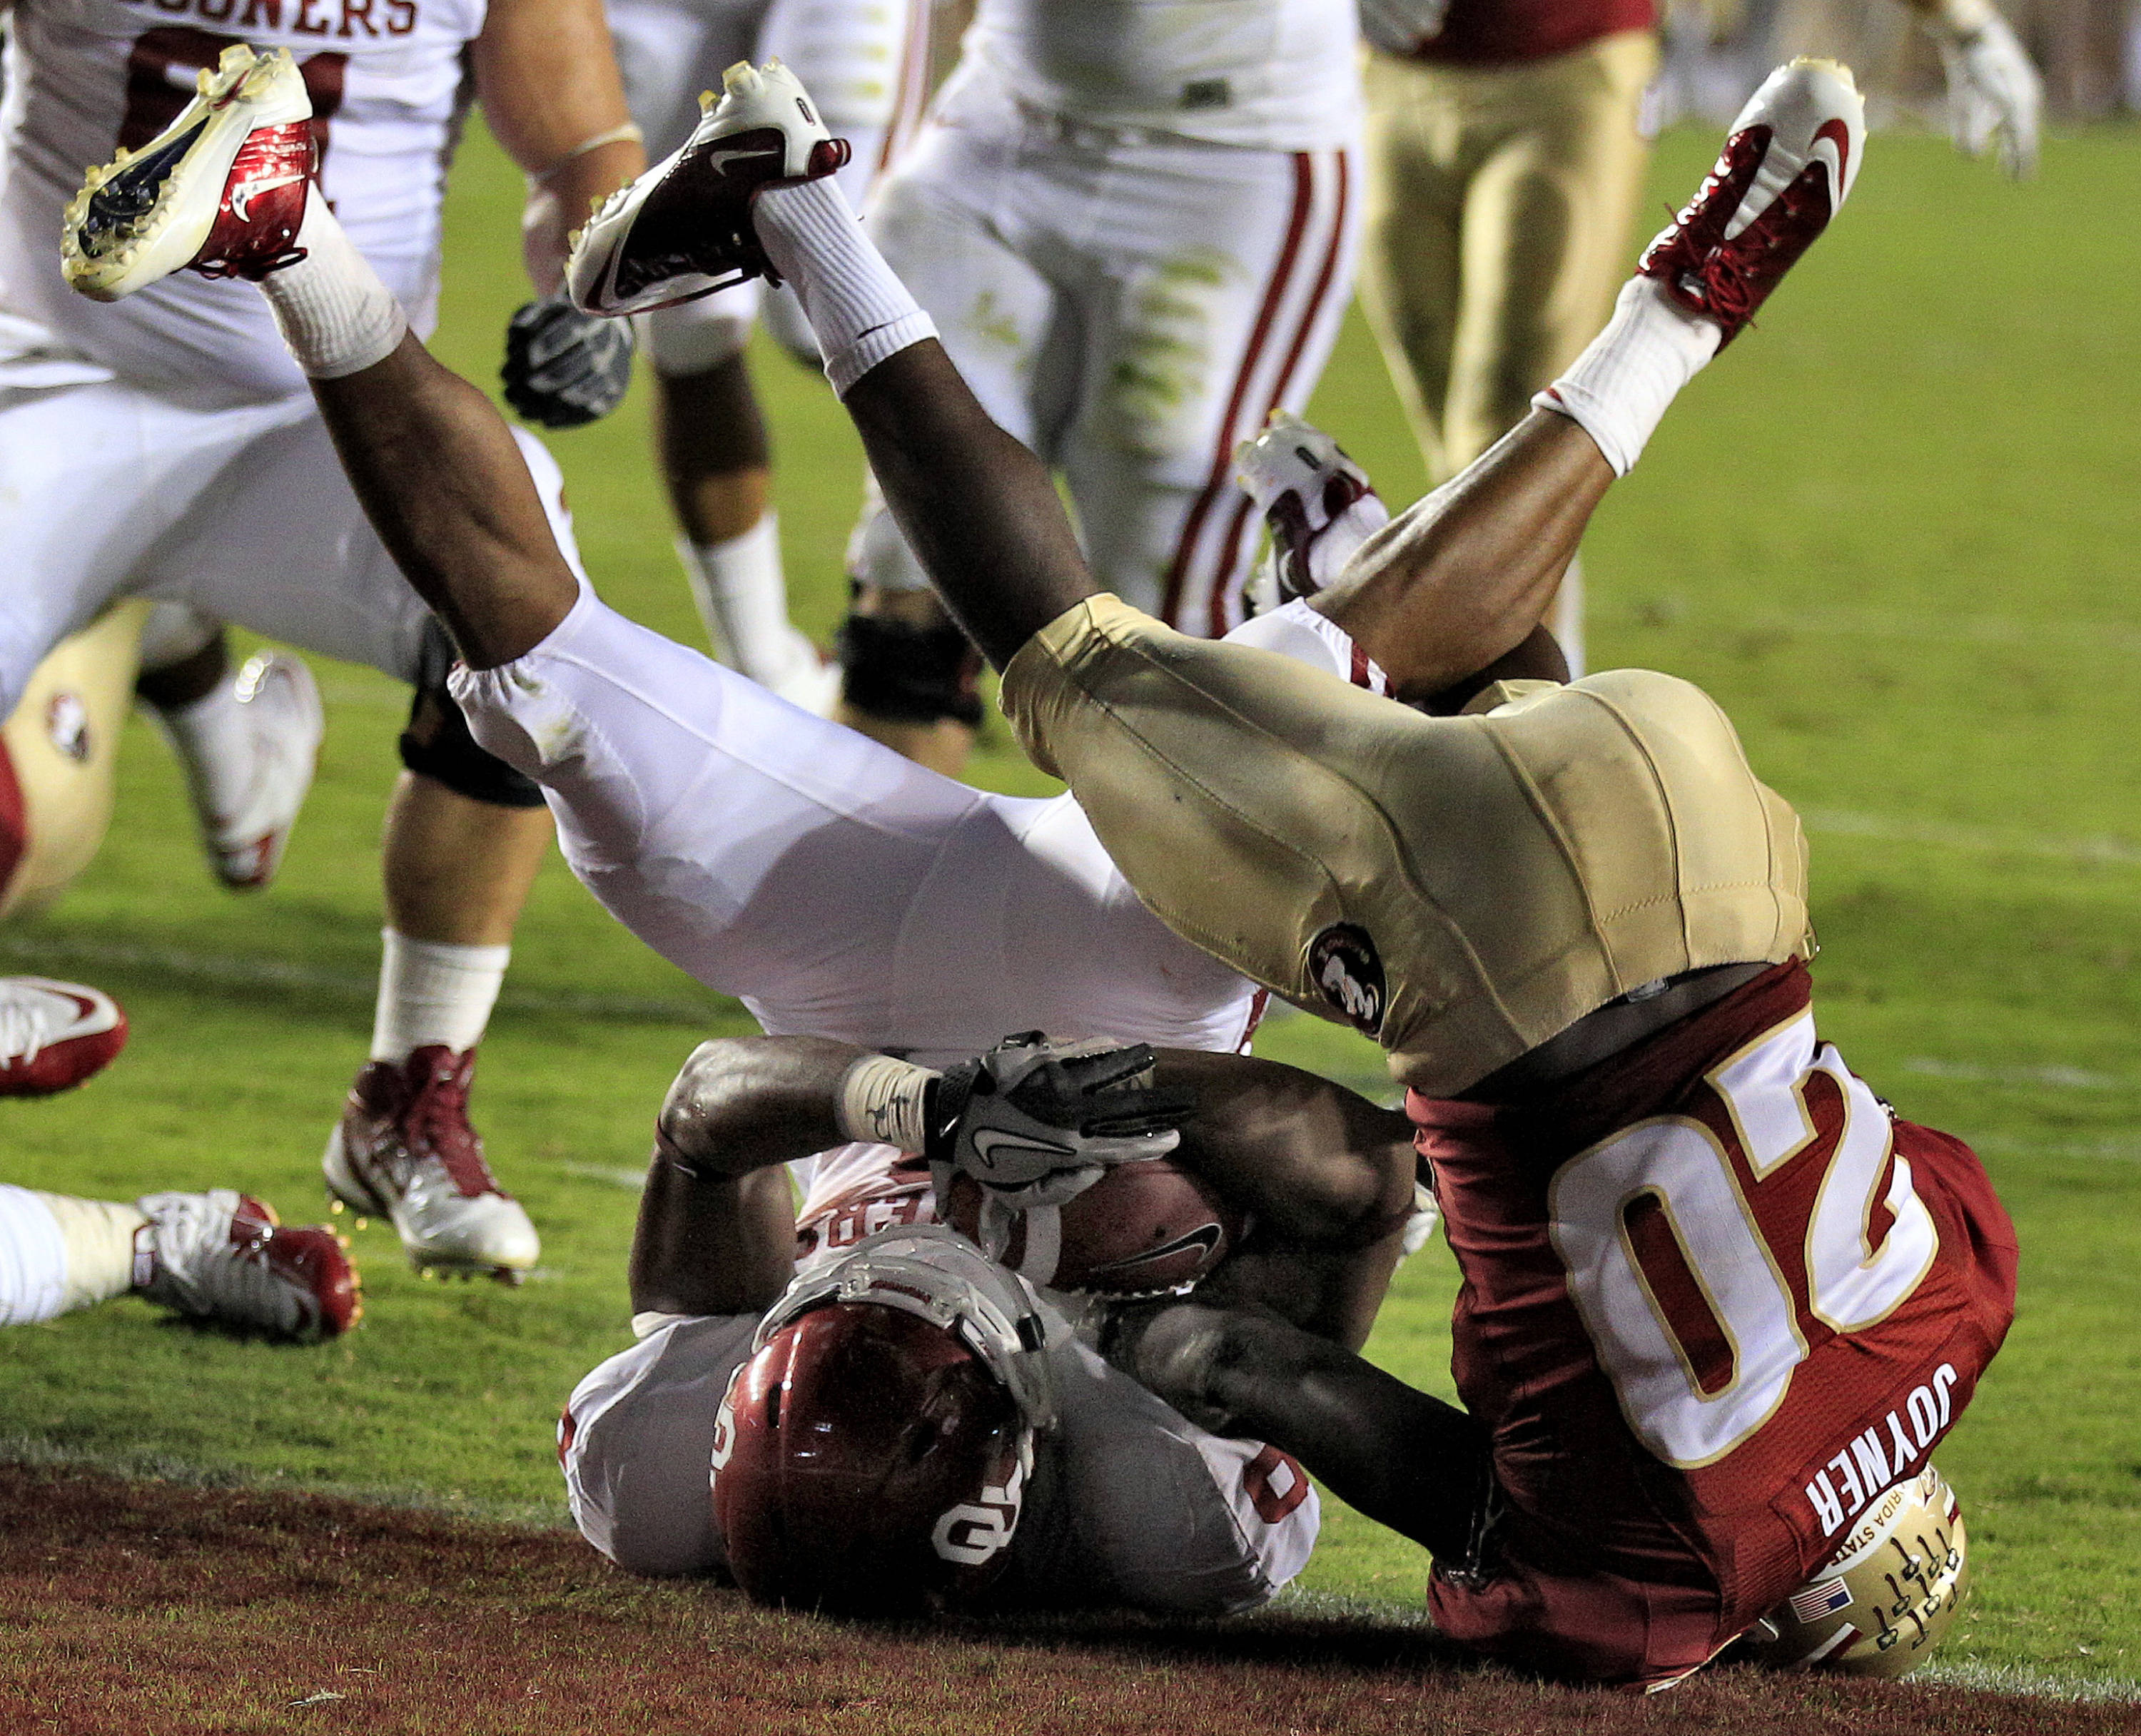 Oklahoma running back Dominique Whaley (8) is upended by Florida State safety Lamarcus Joyner (20) at the goal line during the first quarter. (AP Photo/Chris O'Meara)